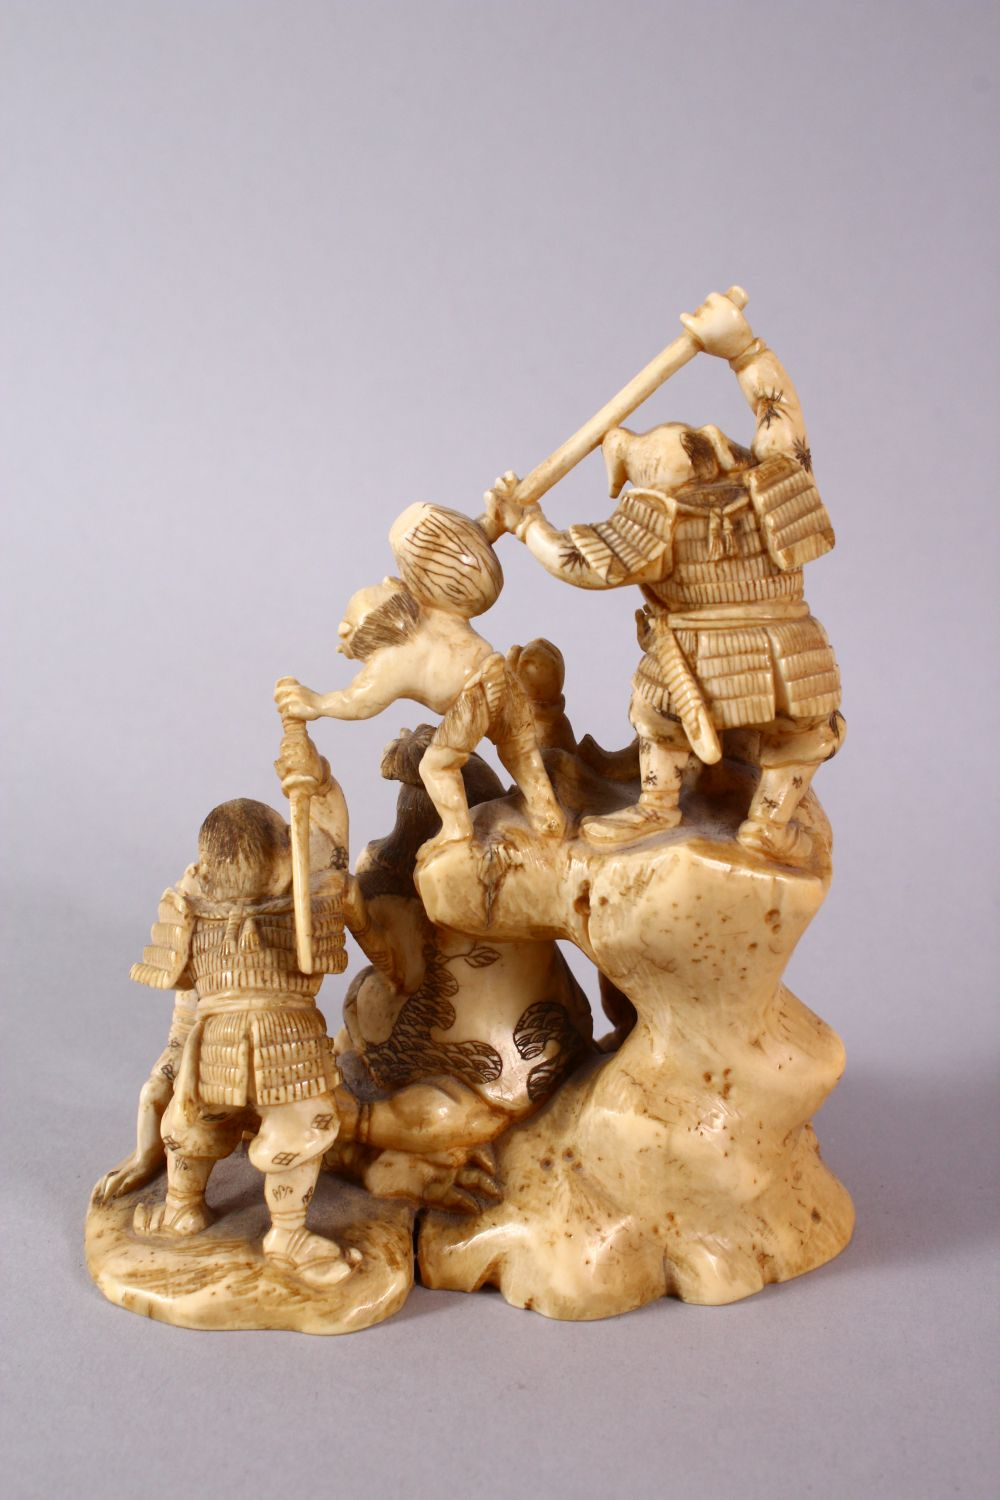 A JAPANESE MEIJI PERIOD CARVED IVORY OKIMONO GROUP - depicting figures attacking oni demons, one dog - Image 4 of 14